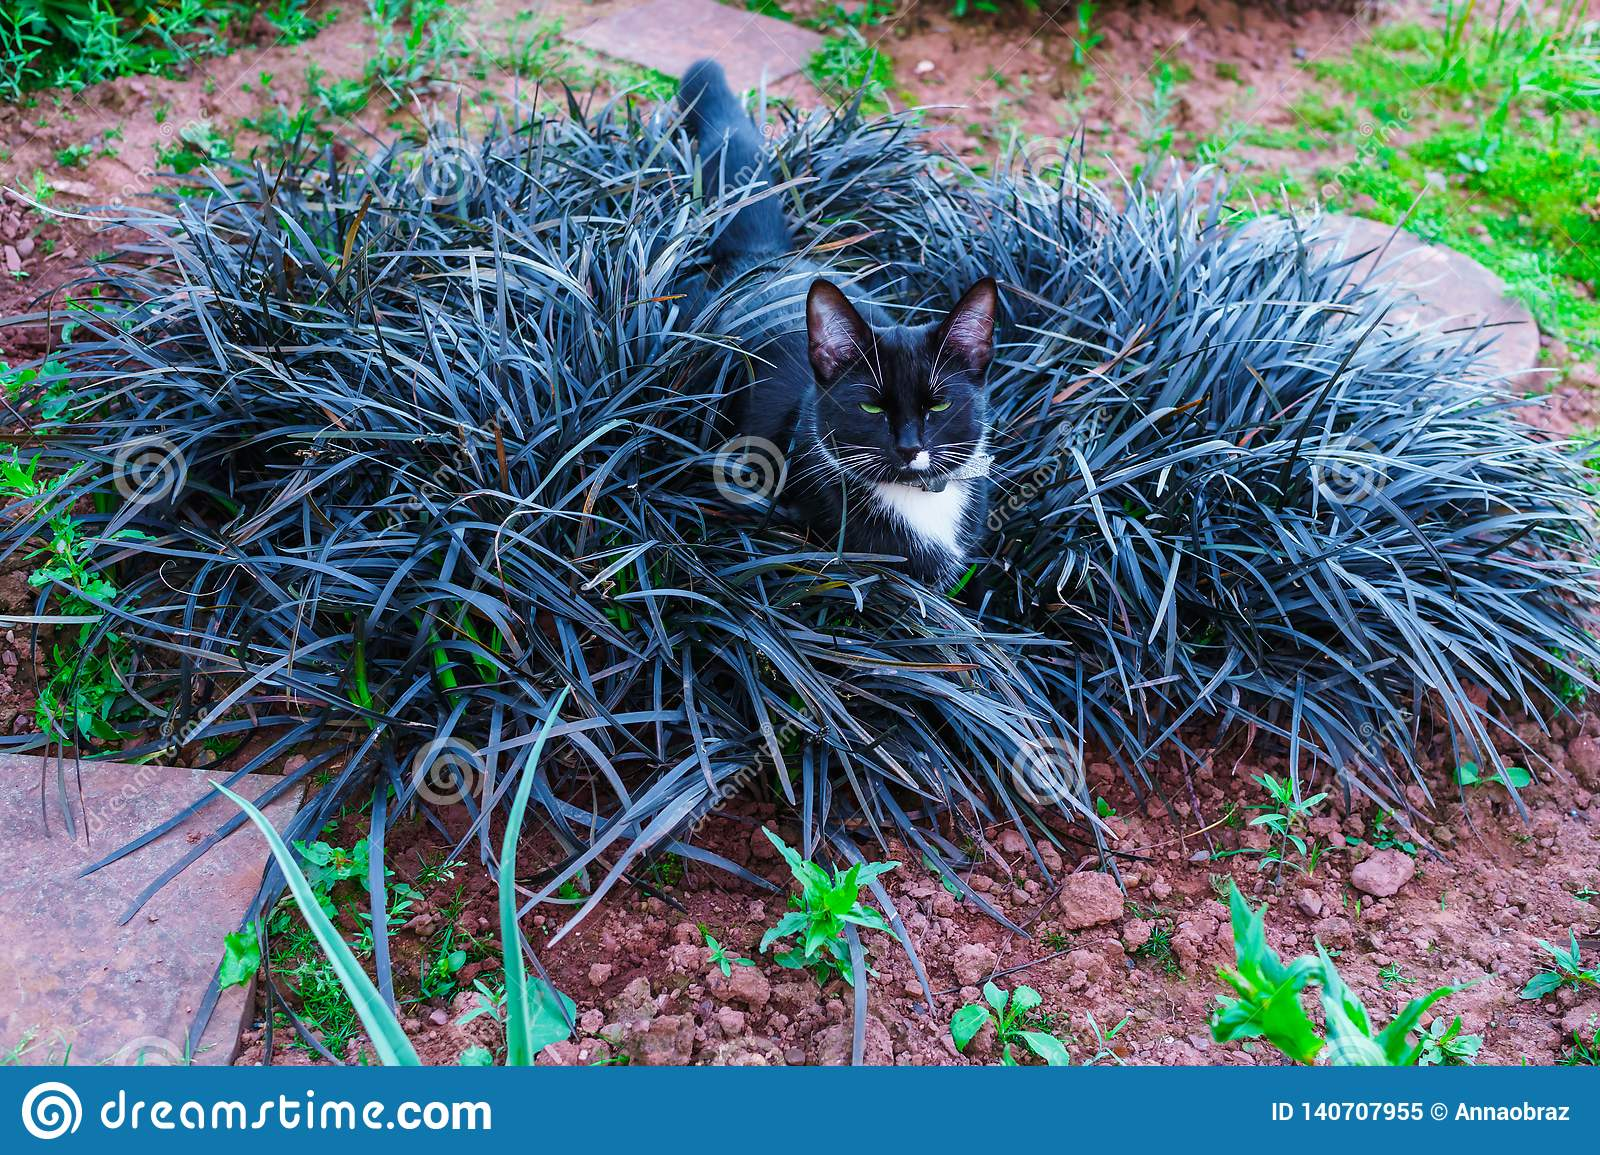 A beautiful black kitty hiding in a decorative flowerbed in the garden